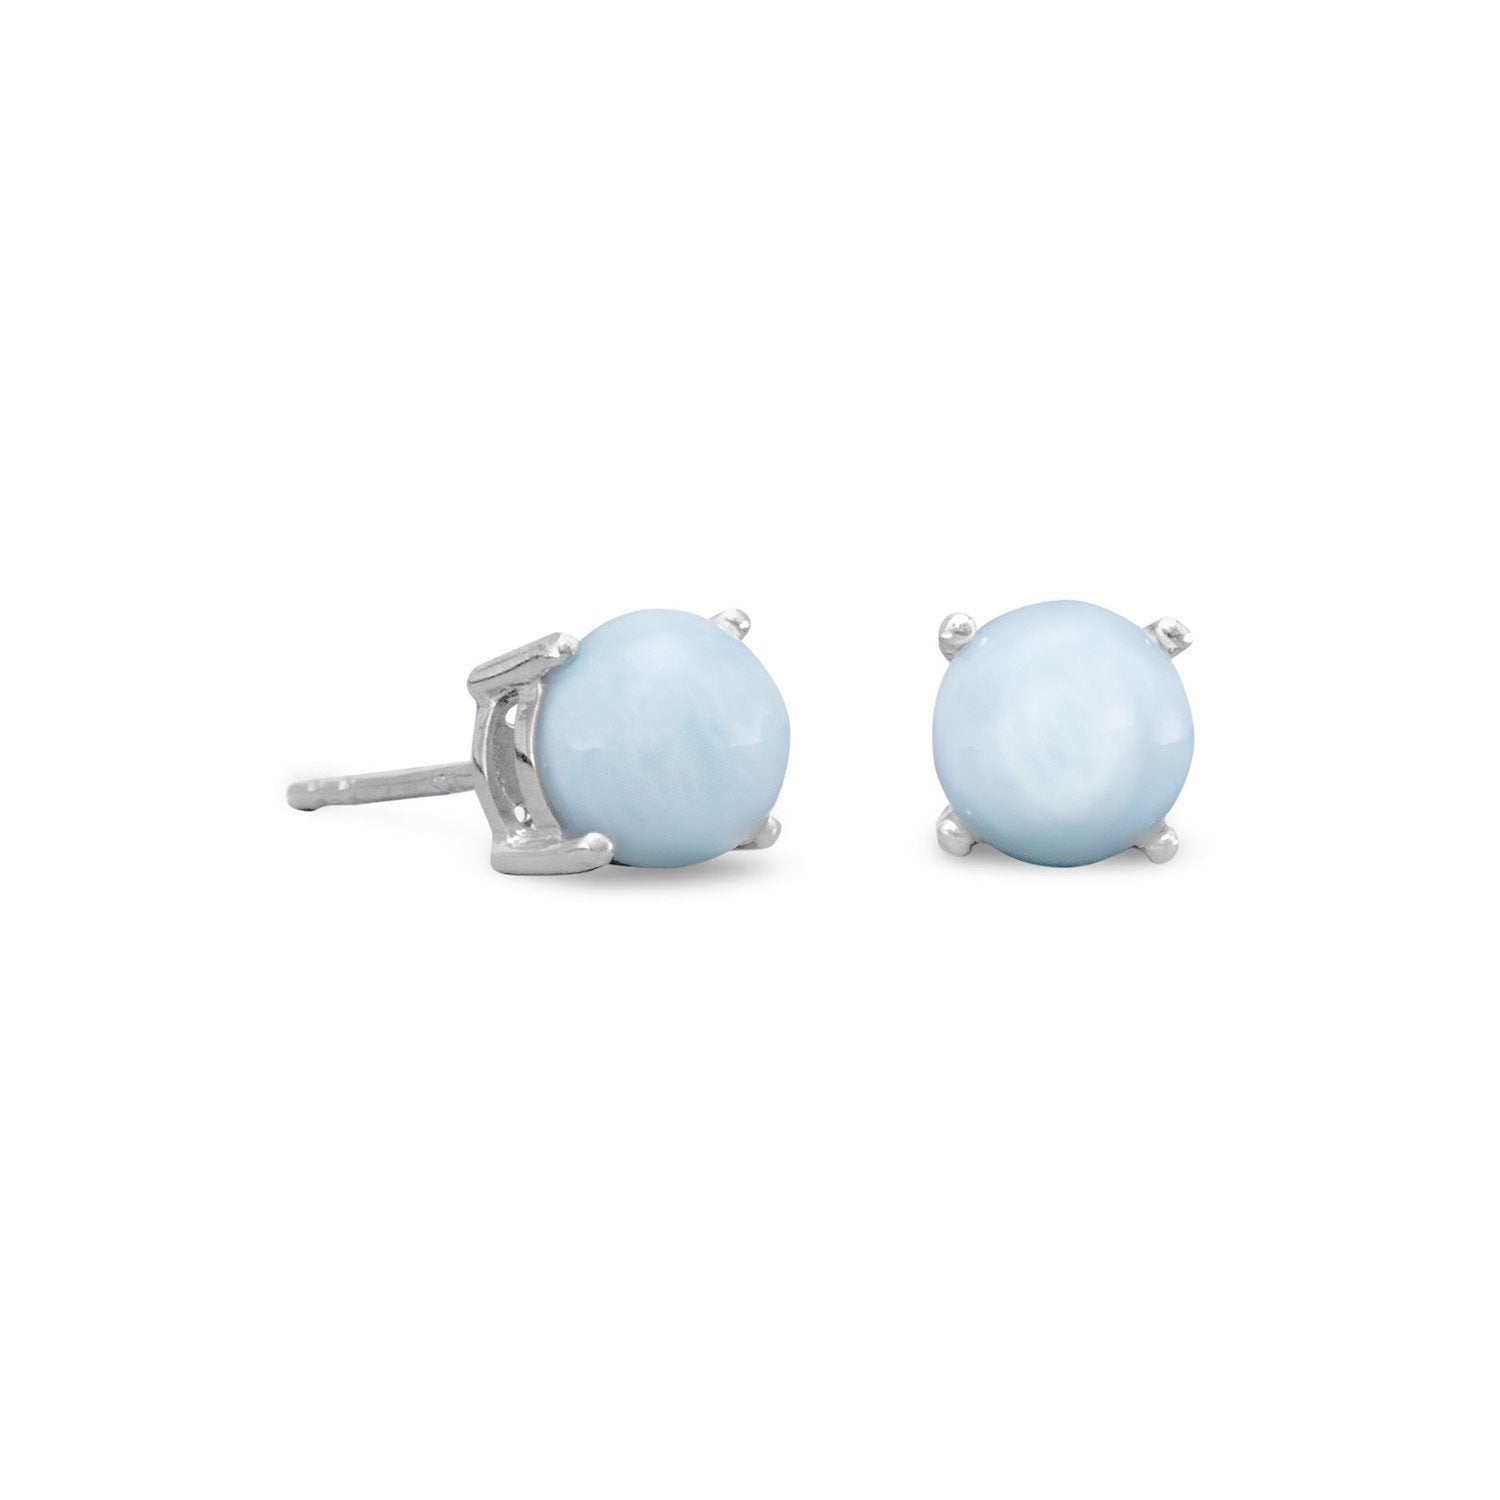 Rhodium Plated Larimar Stud Earrings - the-southern-magnolia-too